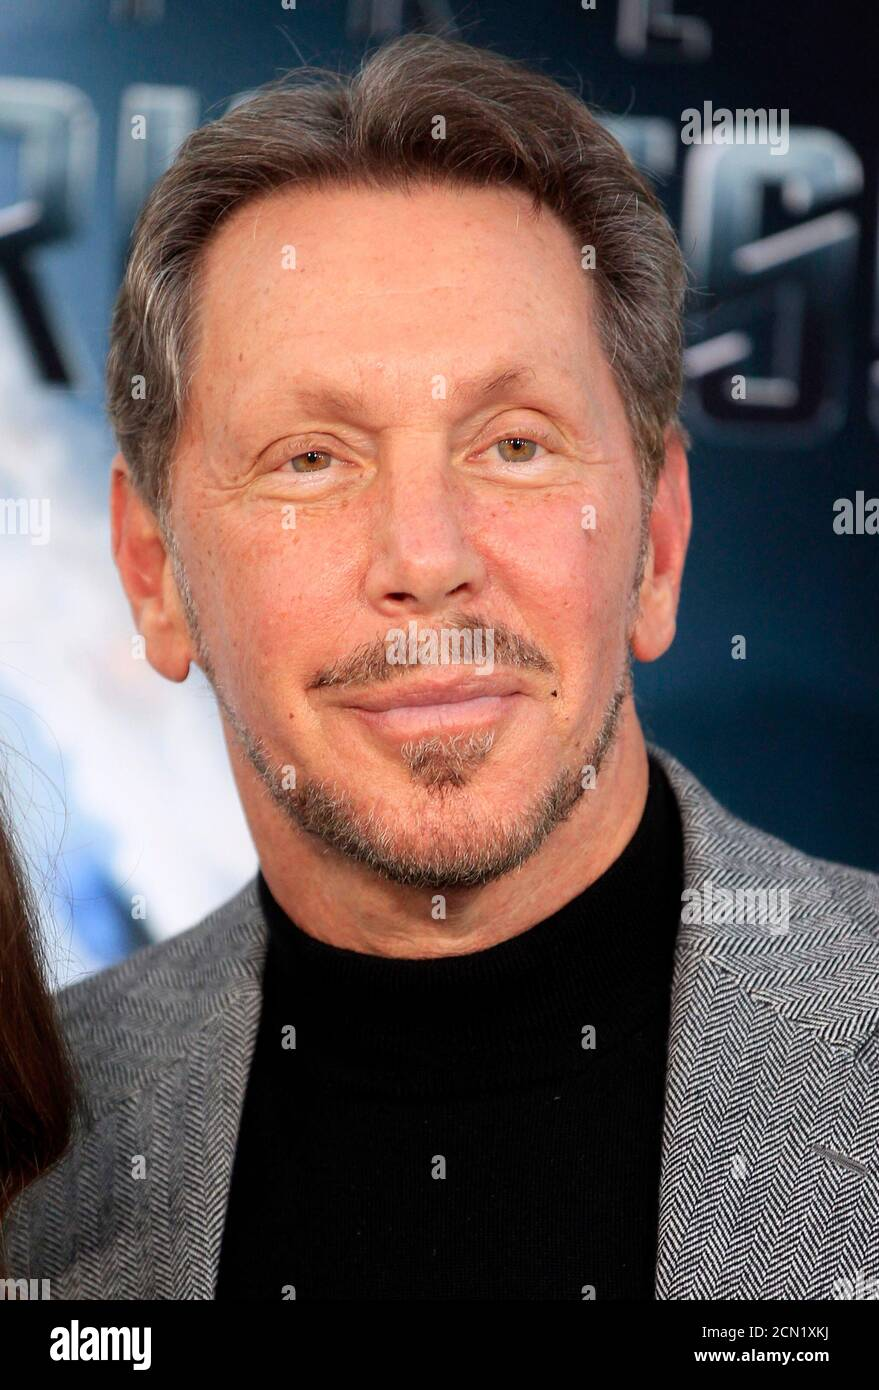 """Oracle CEO Larry Ellison arrives as a guest for the premiere of the new film """"Star Trek Into Darkness"""" in Hollywood May 14, 2013. Ellison's son David is the executive producer of the film. REUTERS/Fred Prouser (UNITED STATES - Tags: ENTERTAINMENT BUSINESS) Stock Photo"""